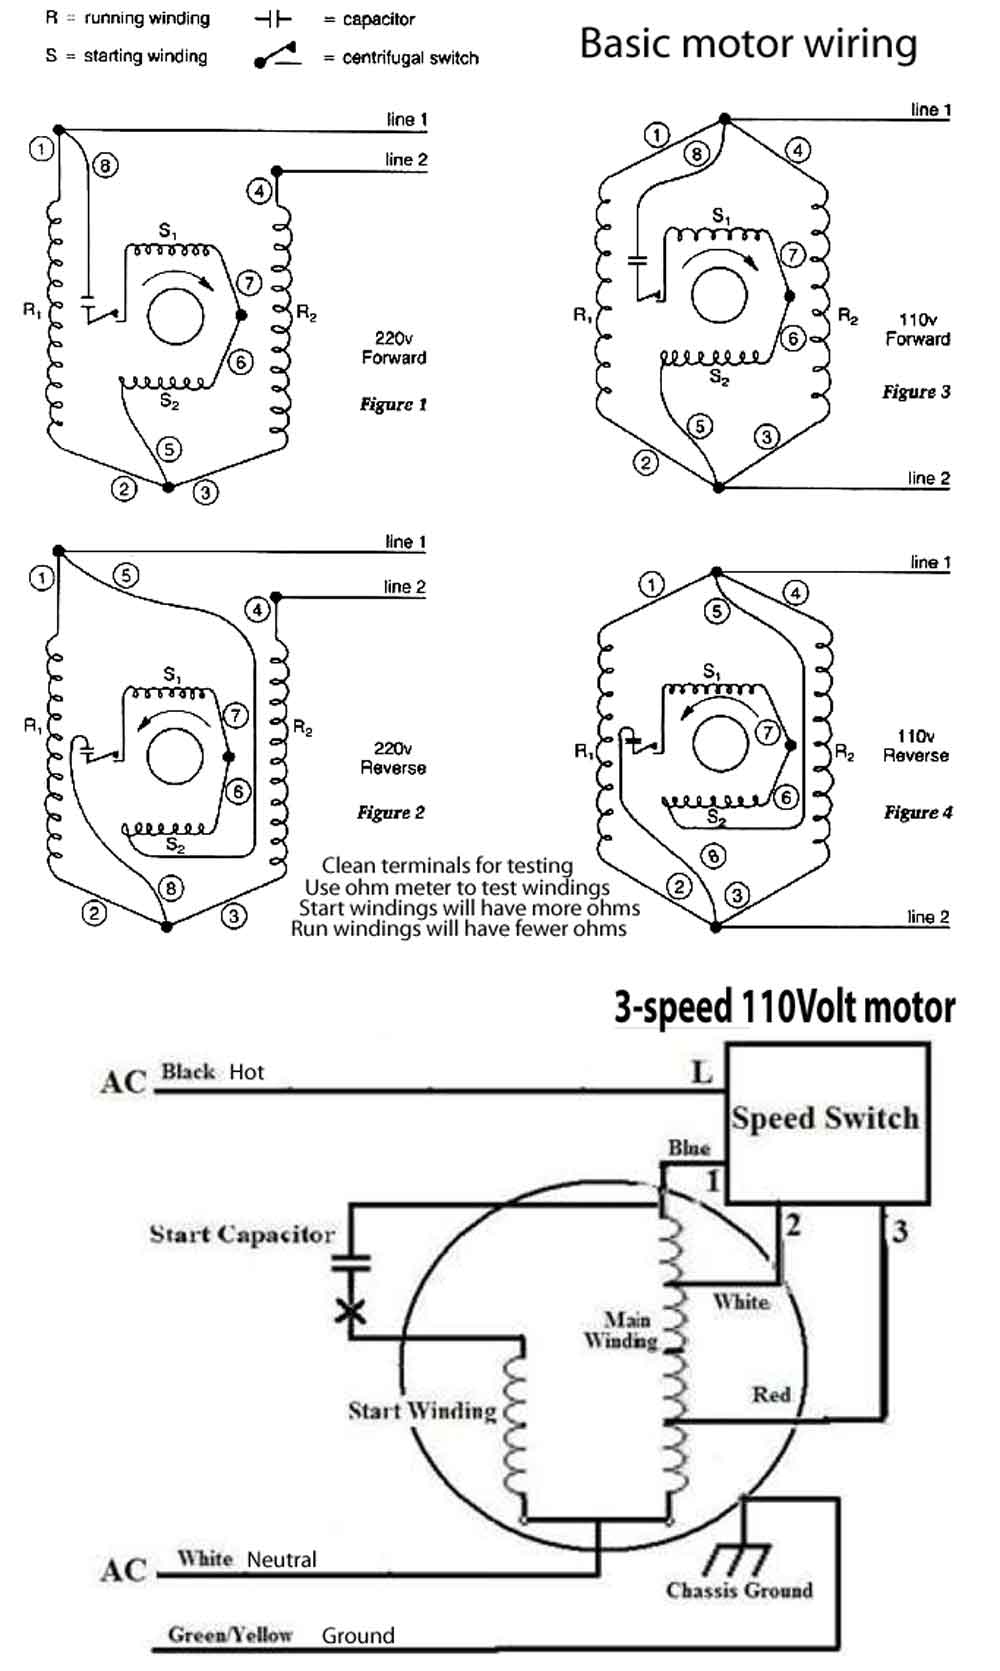 Wire Size For Motor Phase Induction Parts On Single 6 Lead Wiring Basic Illustration